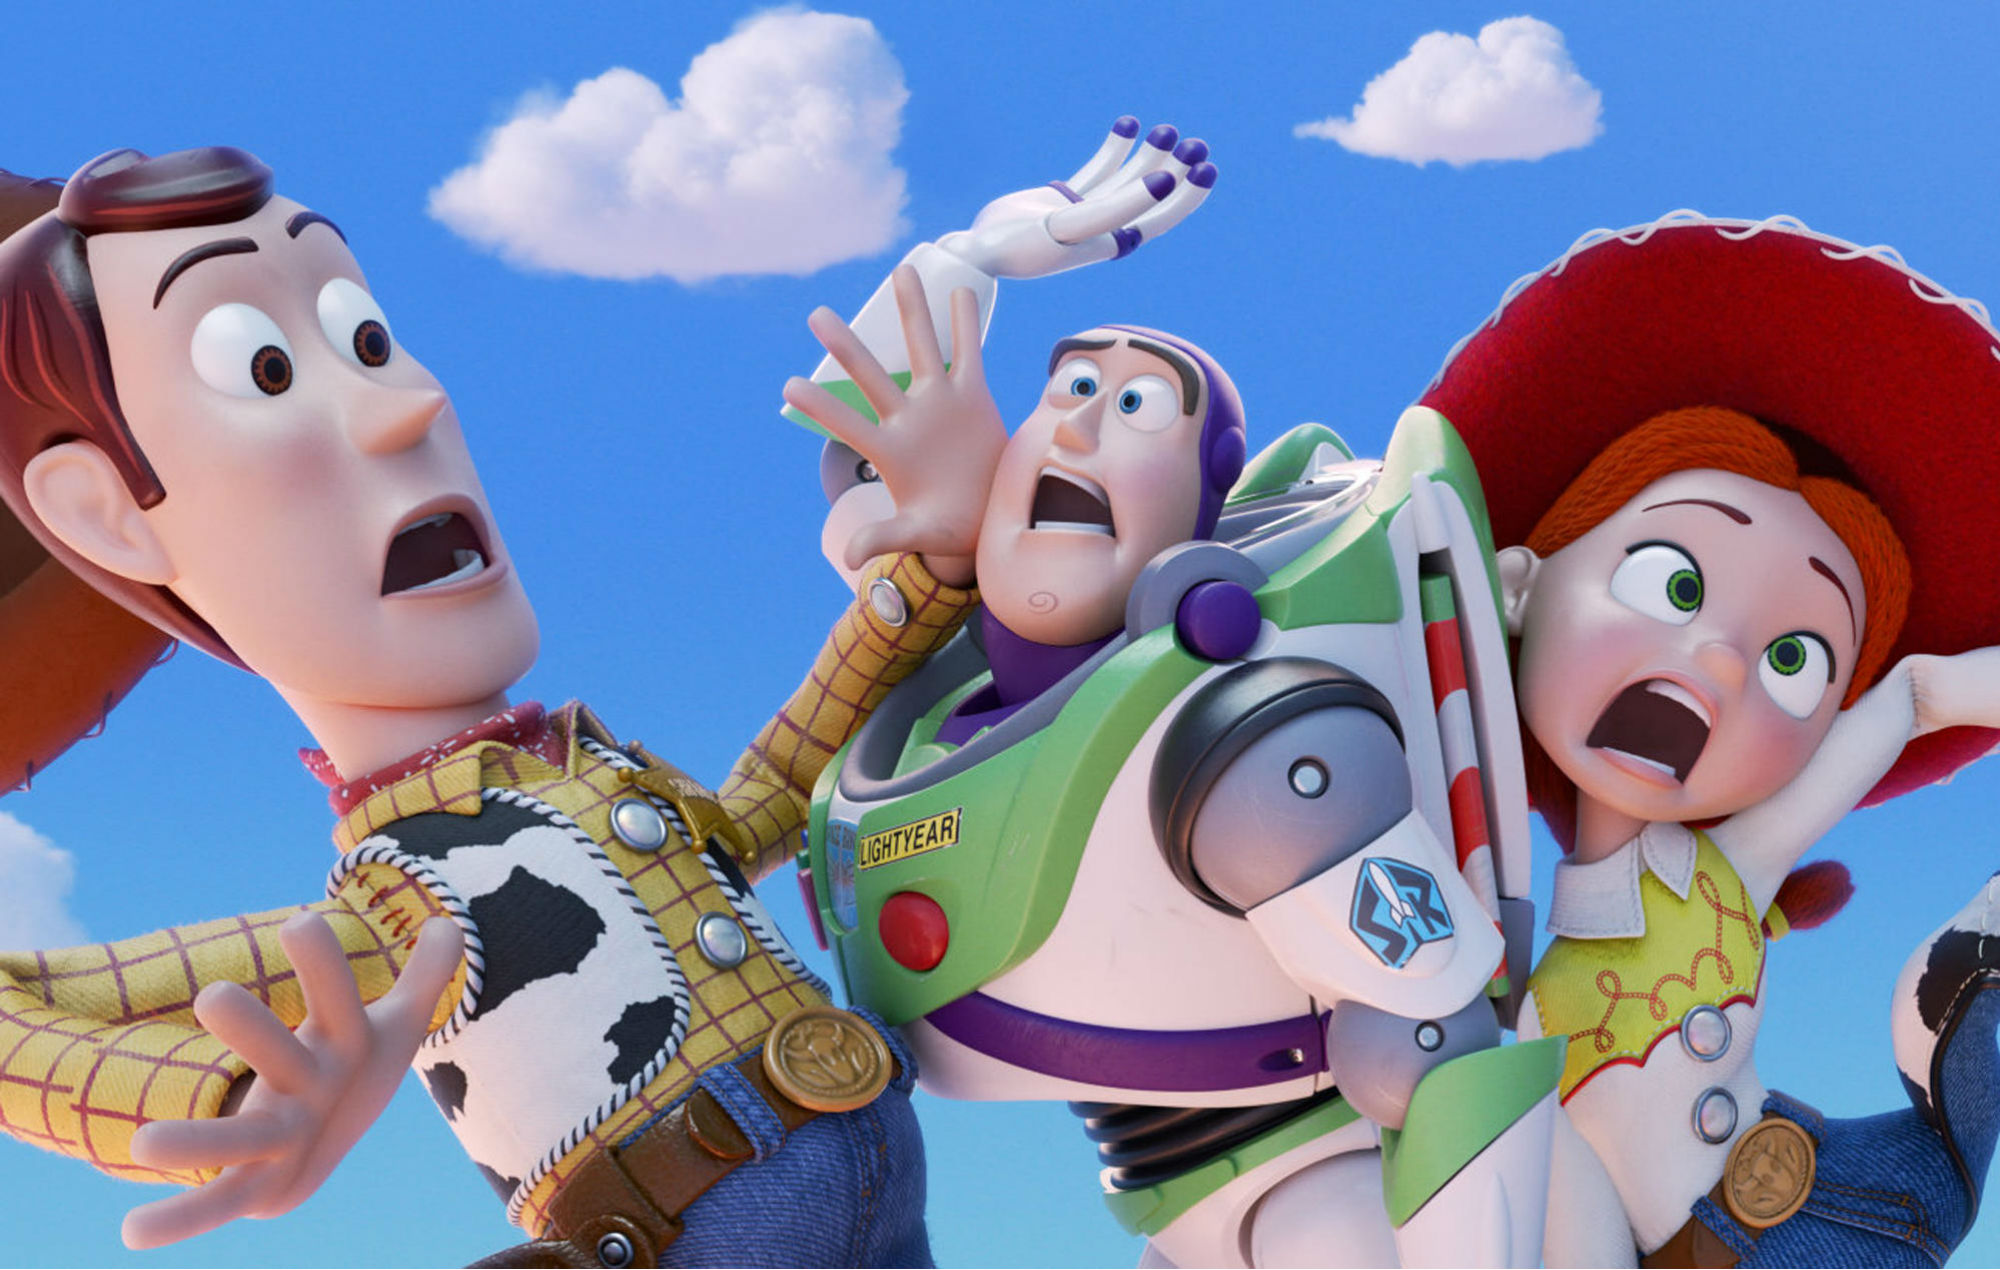 """Another fantastic film in the series"": The first reactions to Toy Story 4 are here"